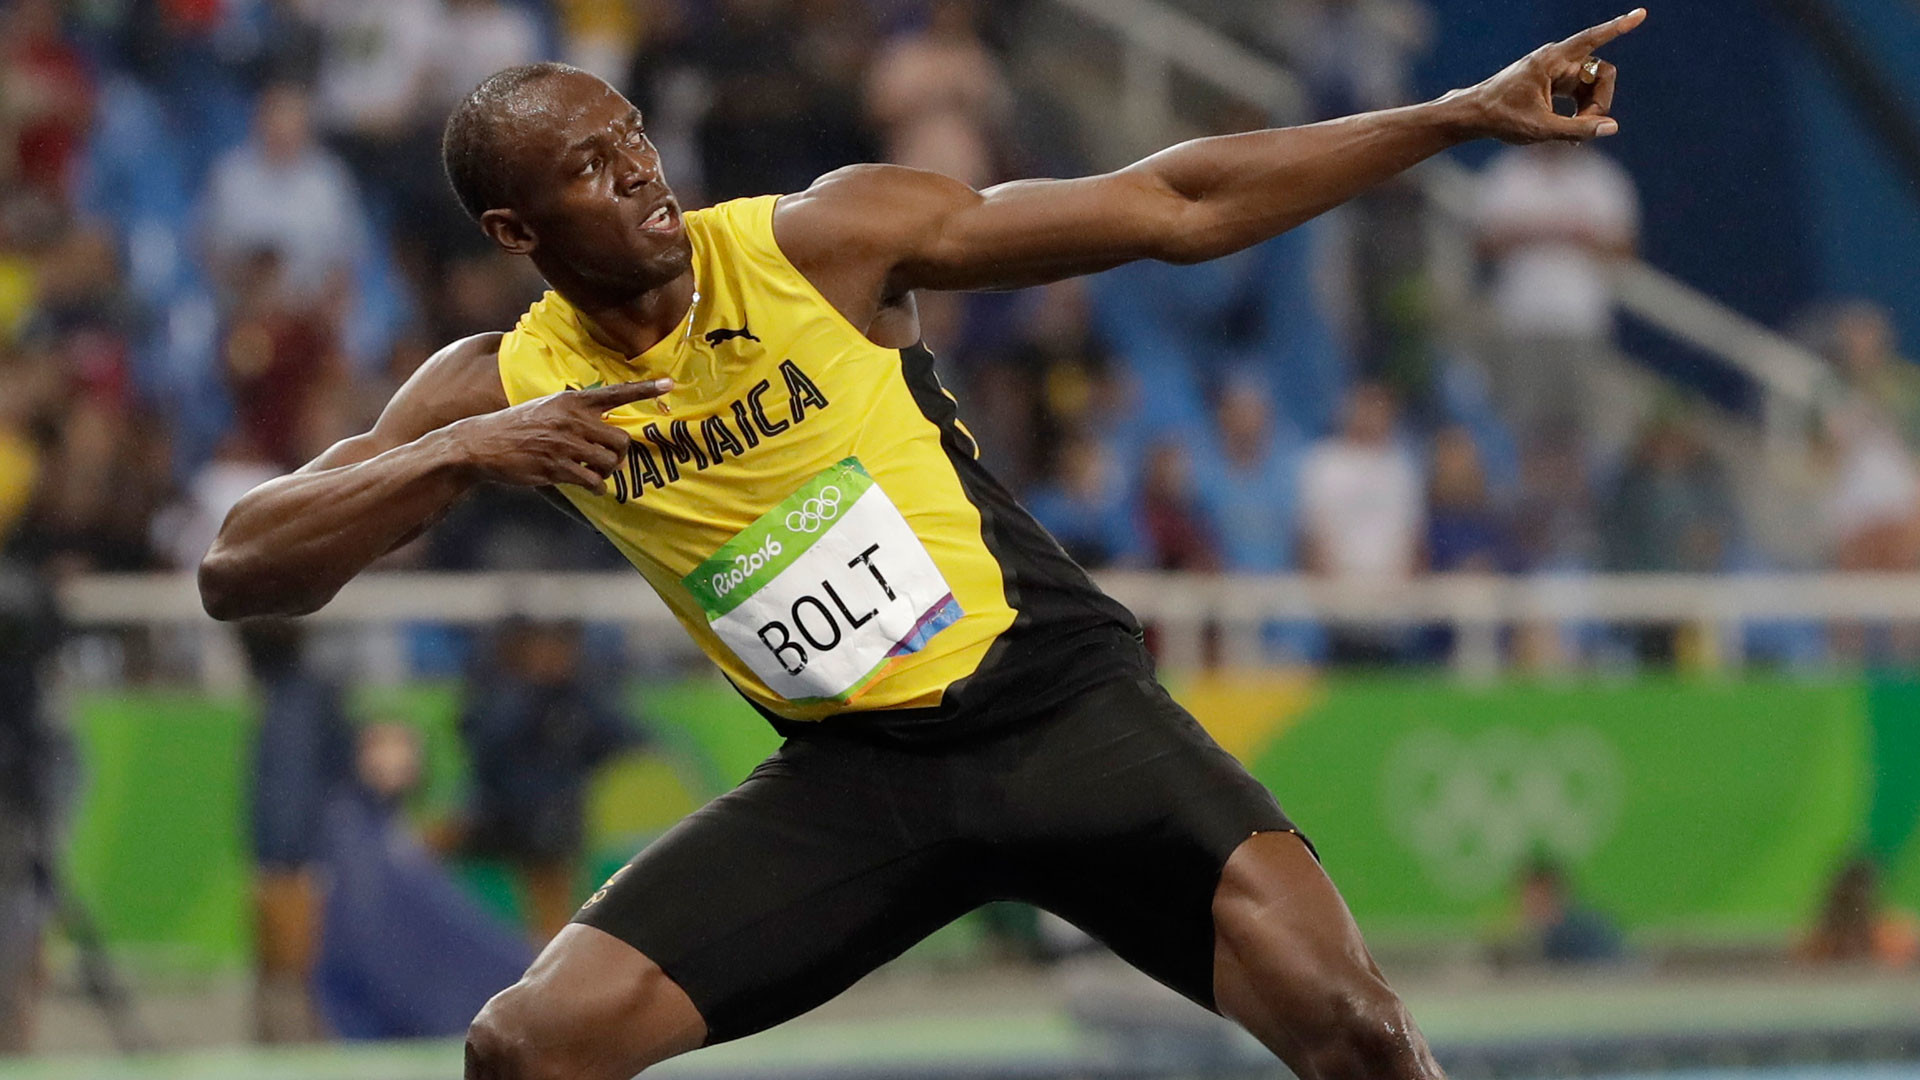 1920x1080 Zaccardi: Usain Bolt peerless, even as he slows down in final Olympics |  NBC Olympics